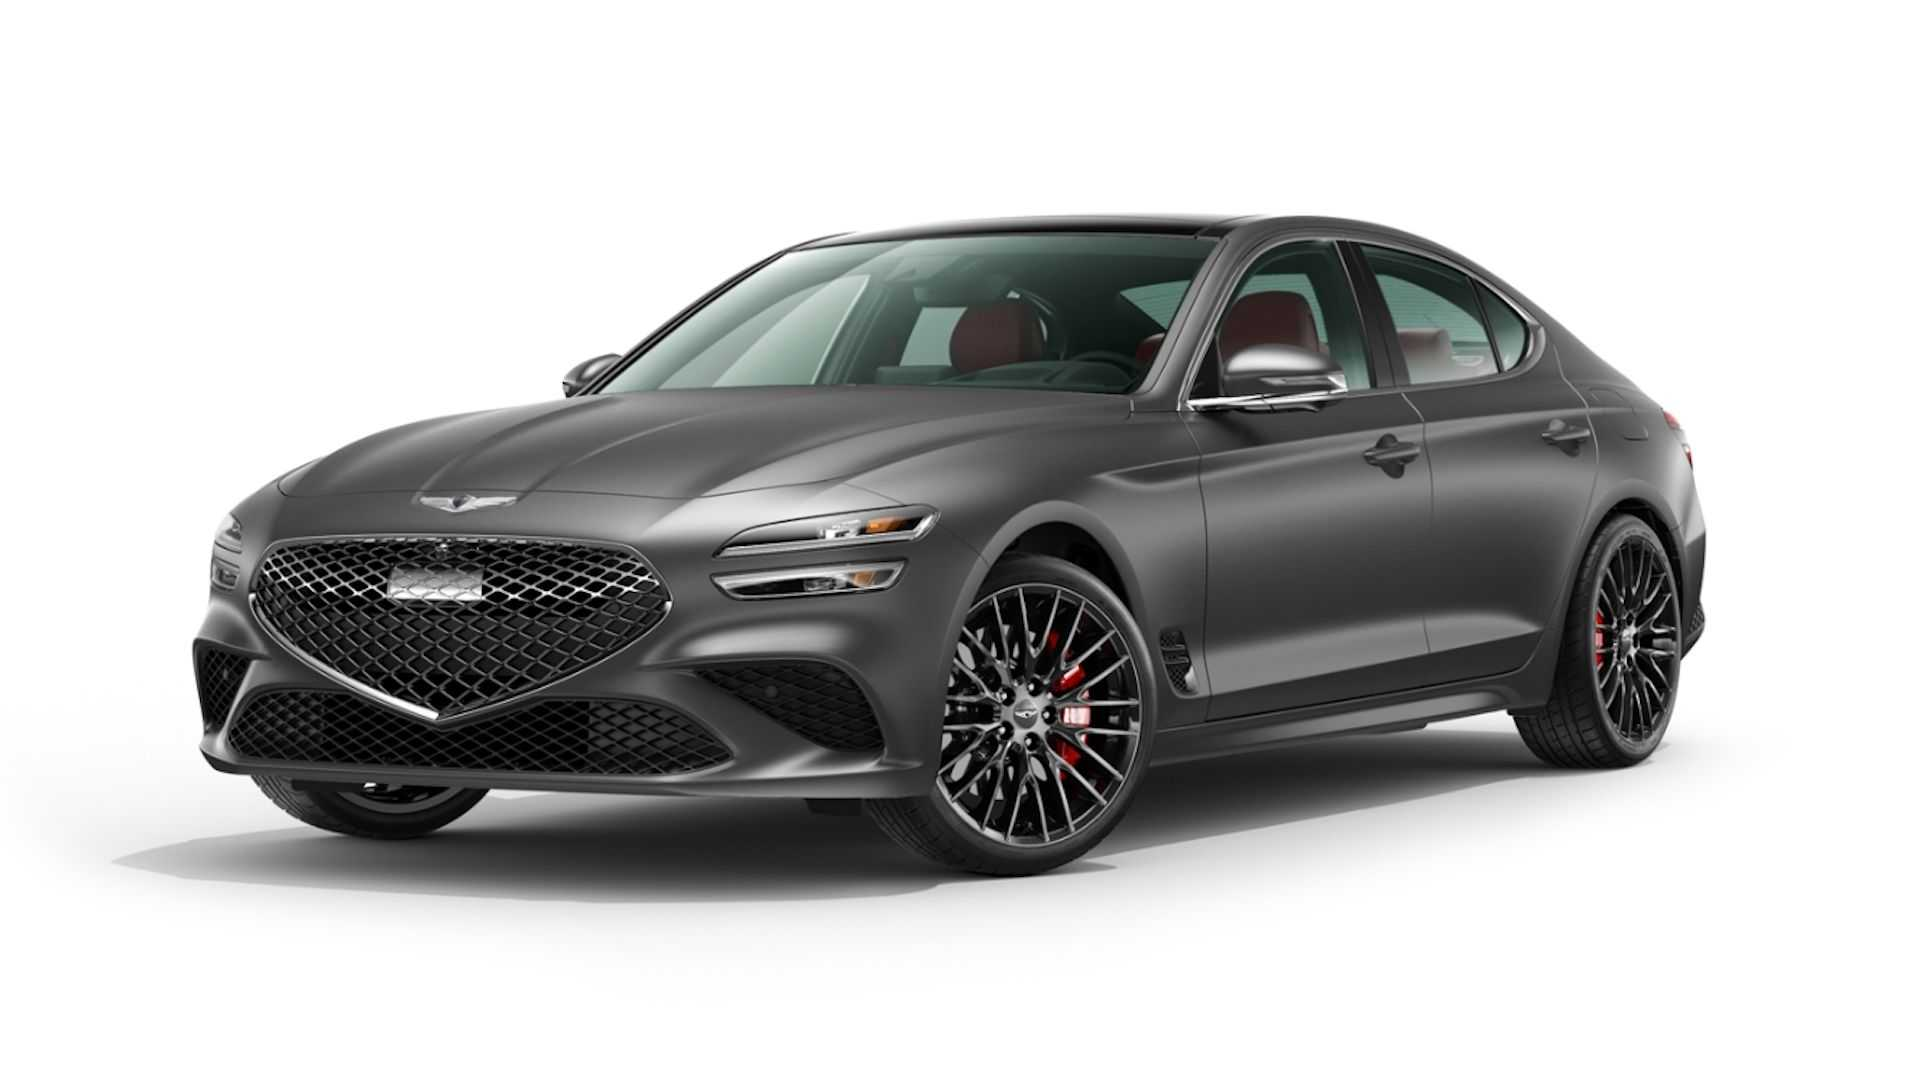 Limited to the launched version of the Genesis G70 from 2022, the reservation is now open